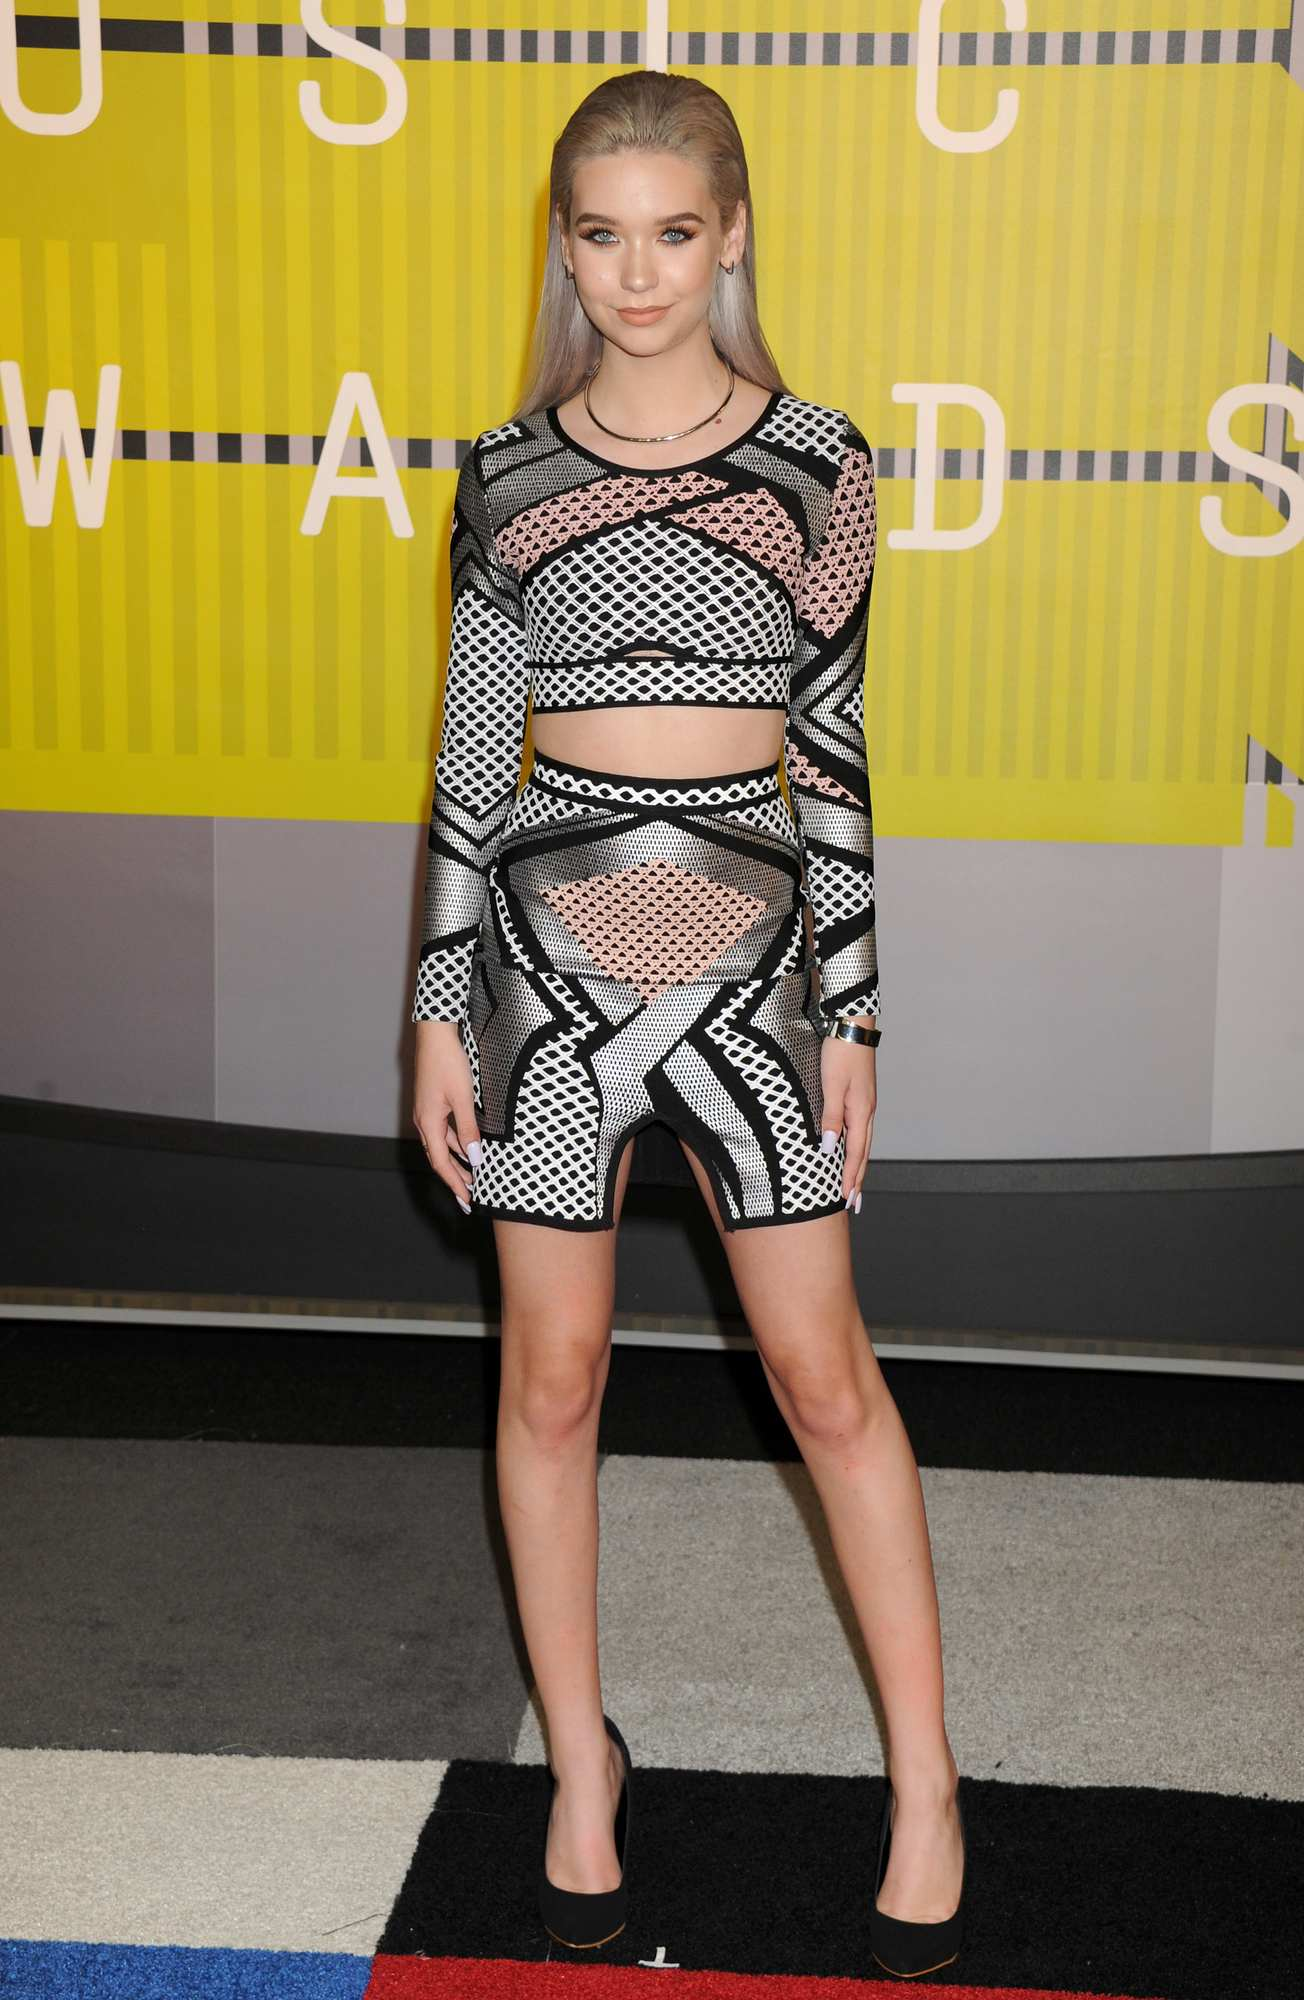 Amanda Steele at MTV Video Music Awards-1